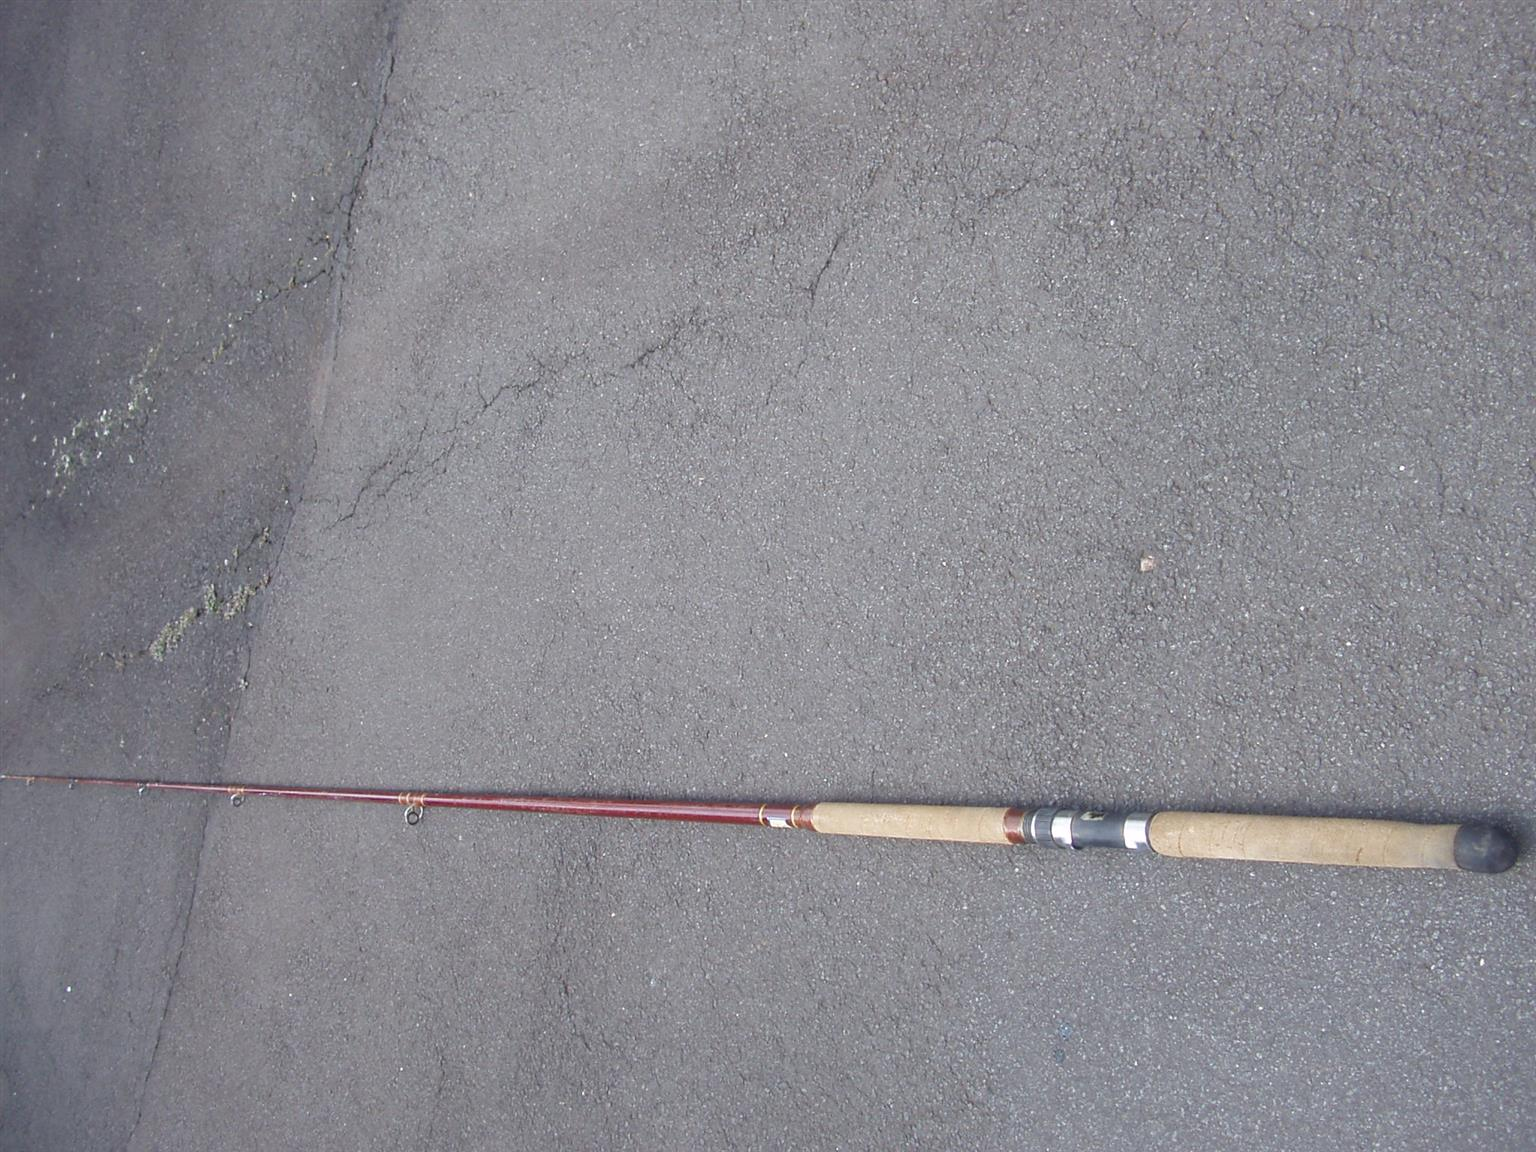 Cane Fishing Rod - In good condition